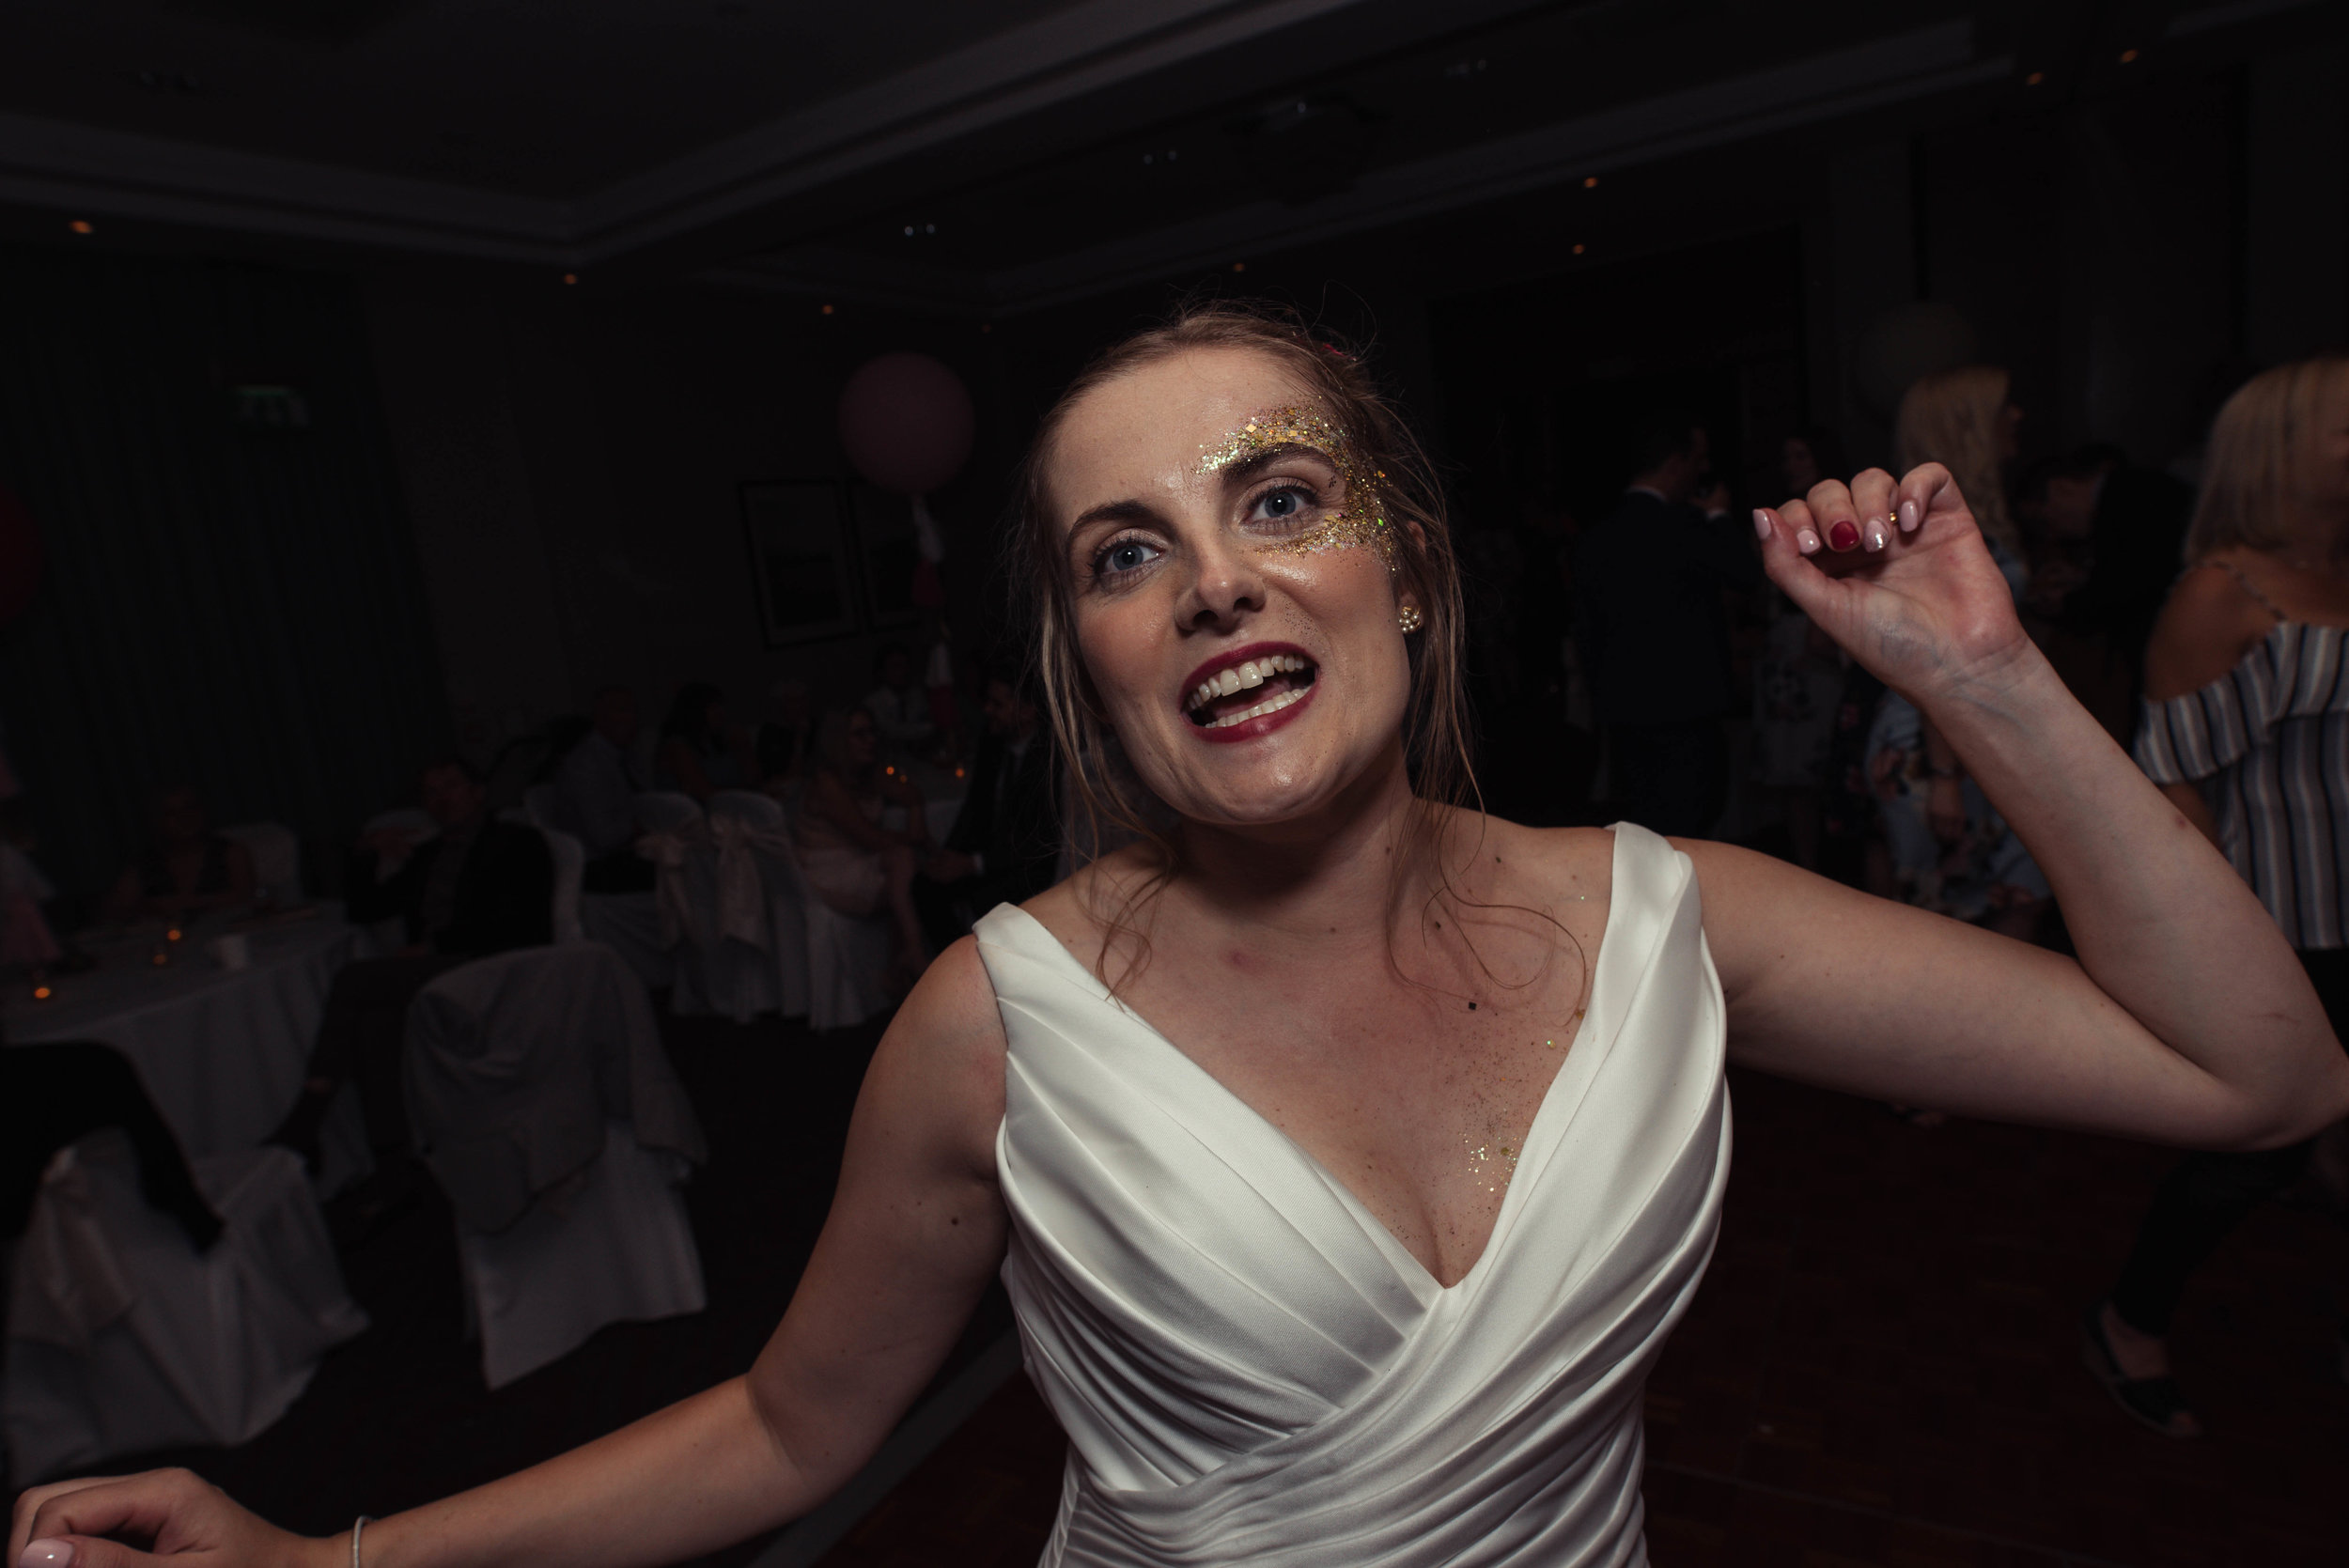 The bride on the dance floor